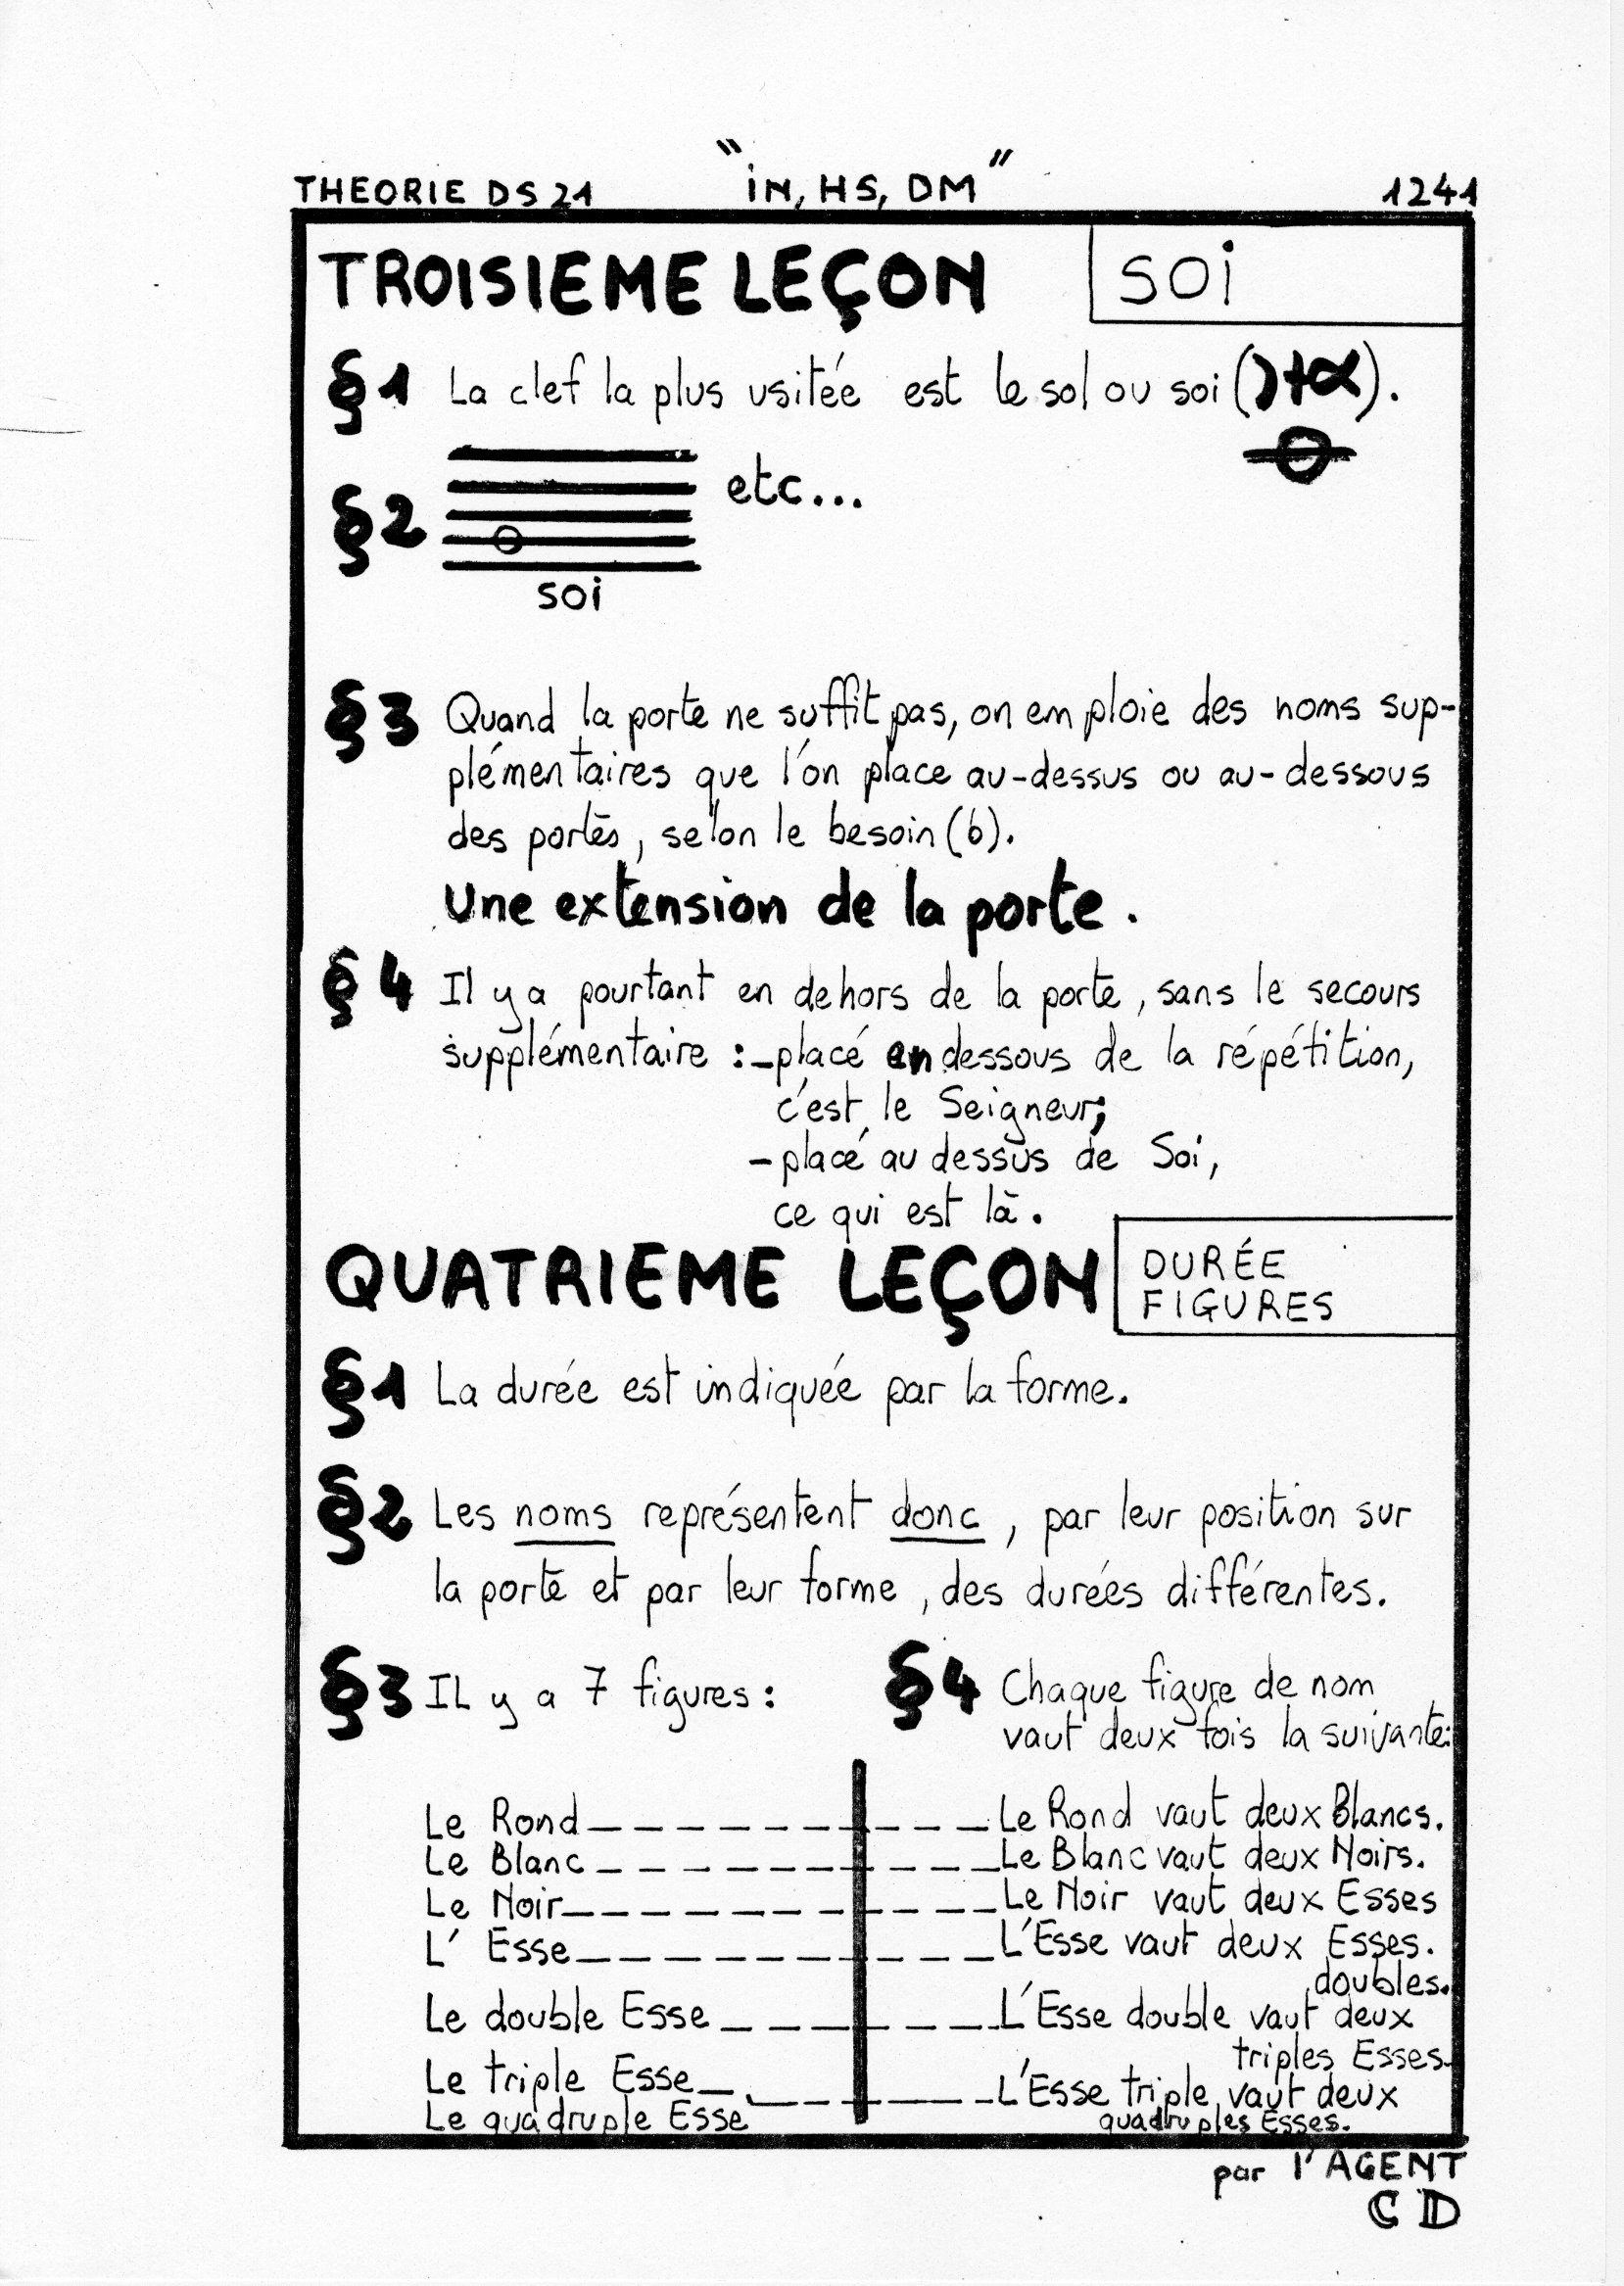 page 1241 Théorie D.S. 21 IN, HS, DM